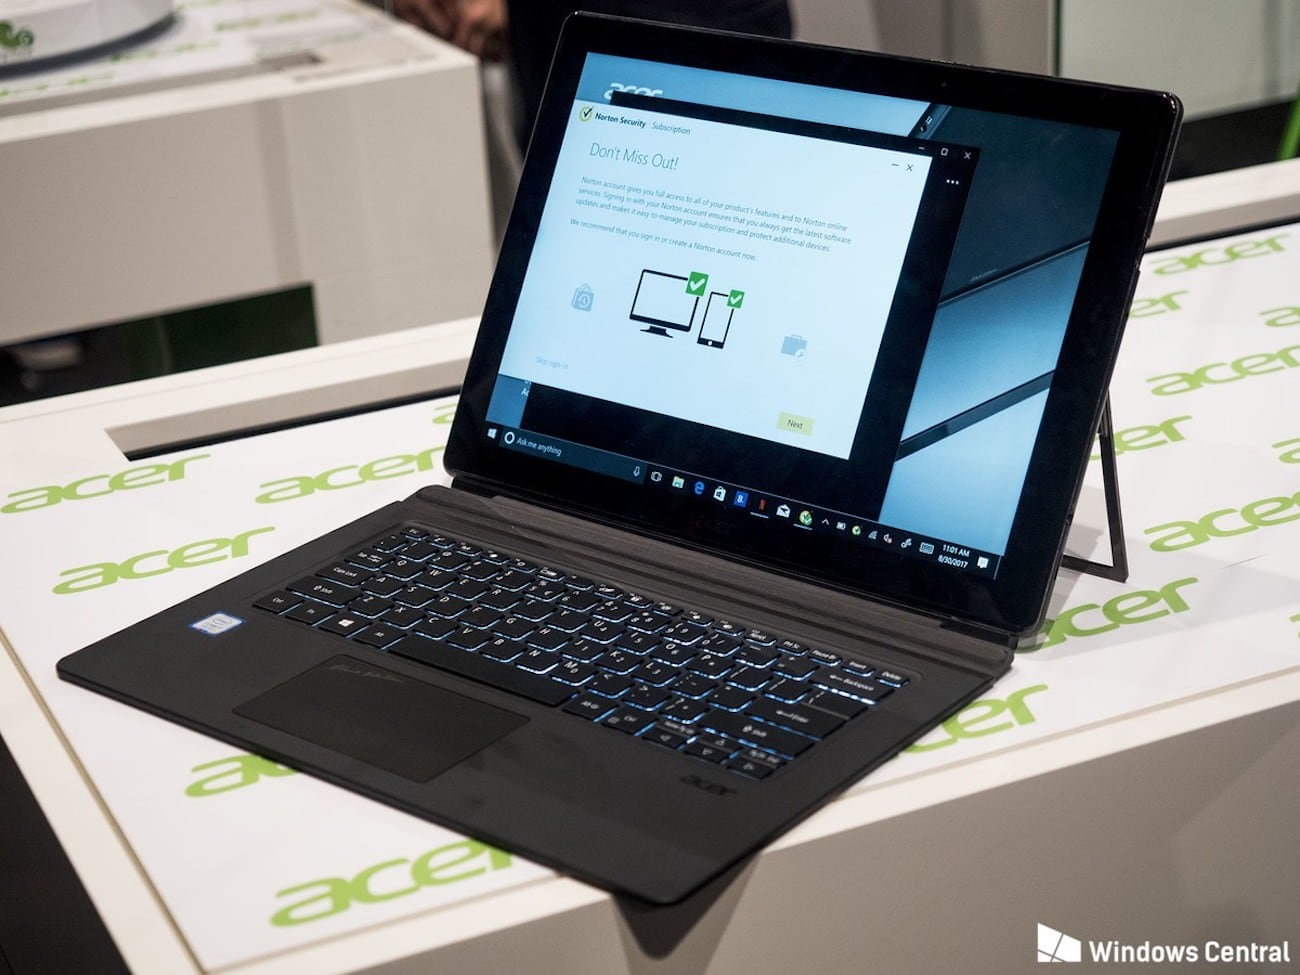 Acer Switch 7 Fanless 2-in-1 Notebook